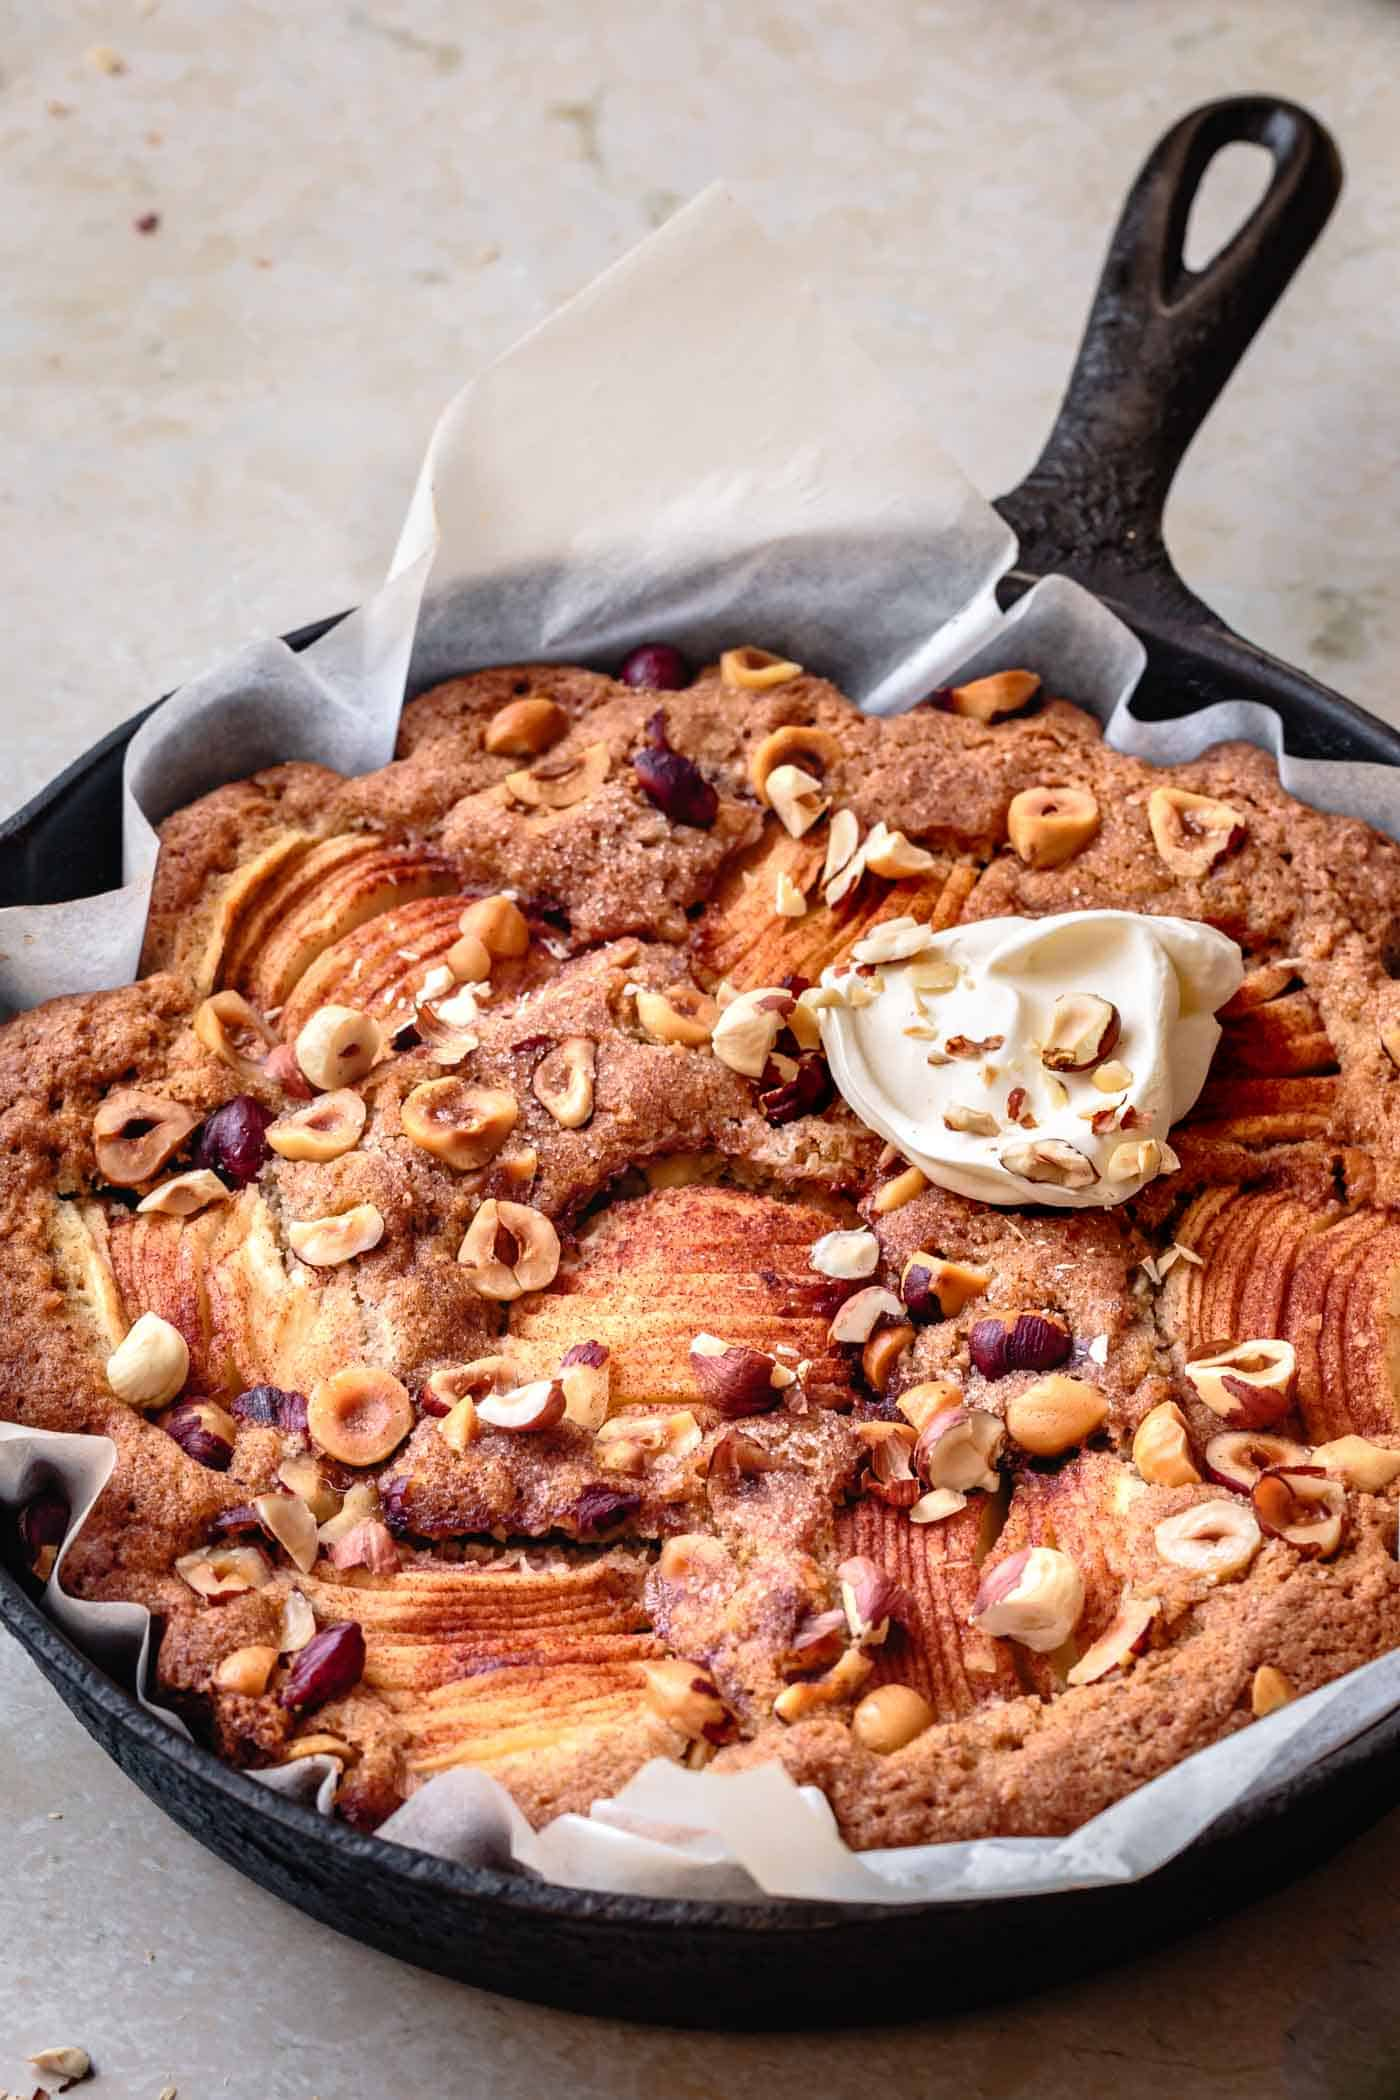 Gluten-free apple cake recipe in a skillet topped with creme fraiche